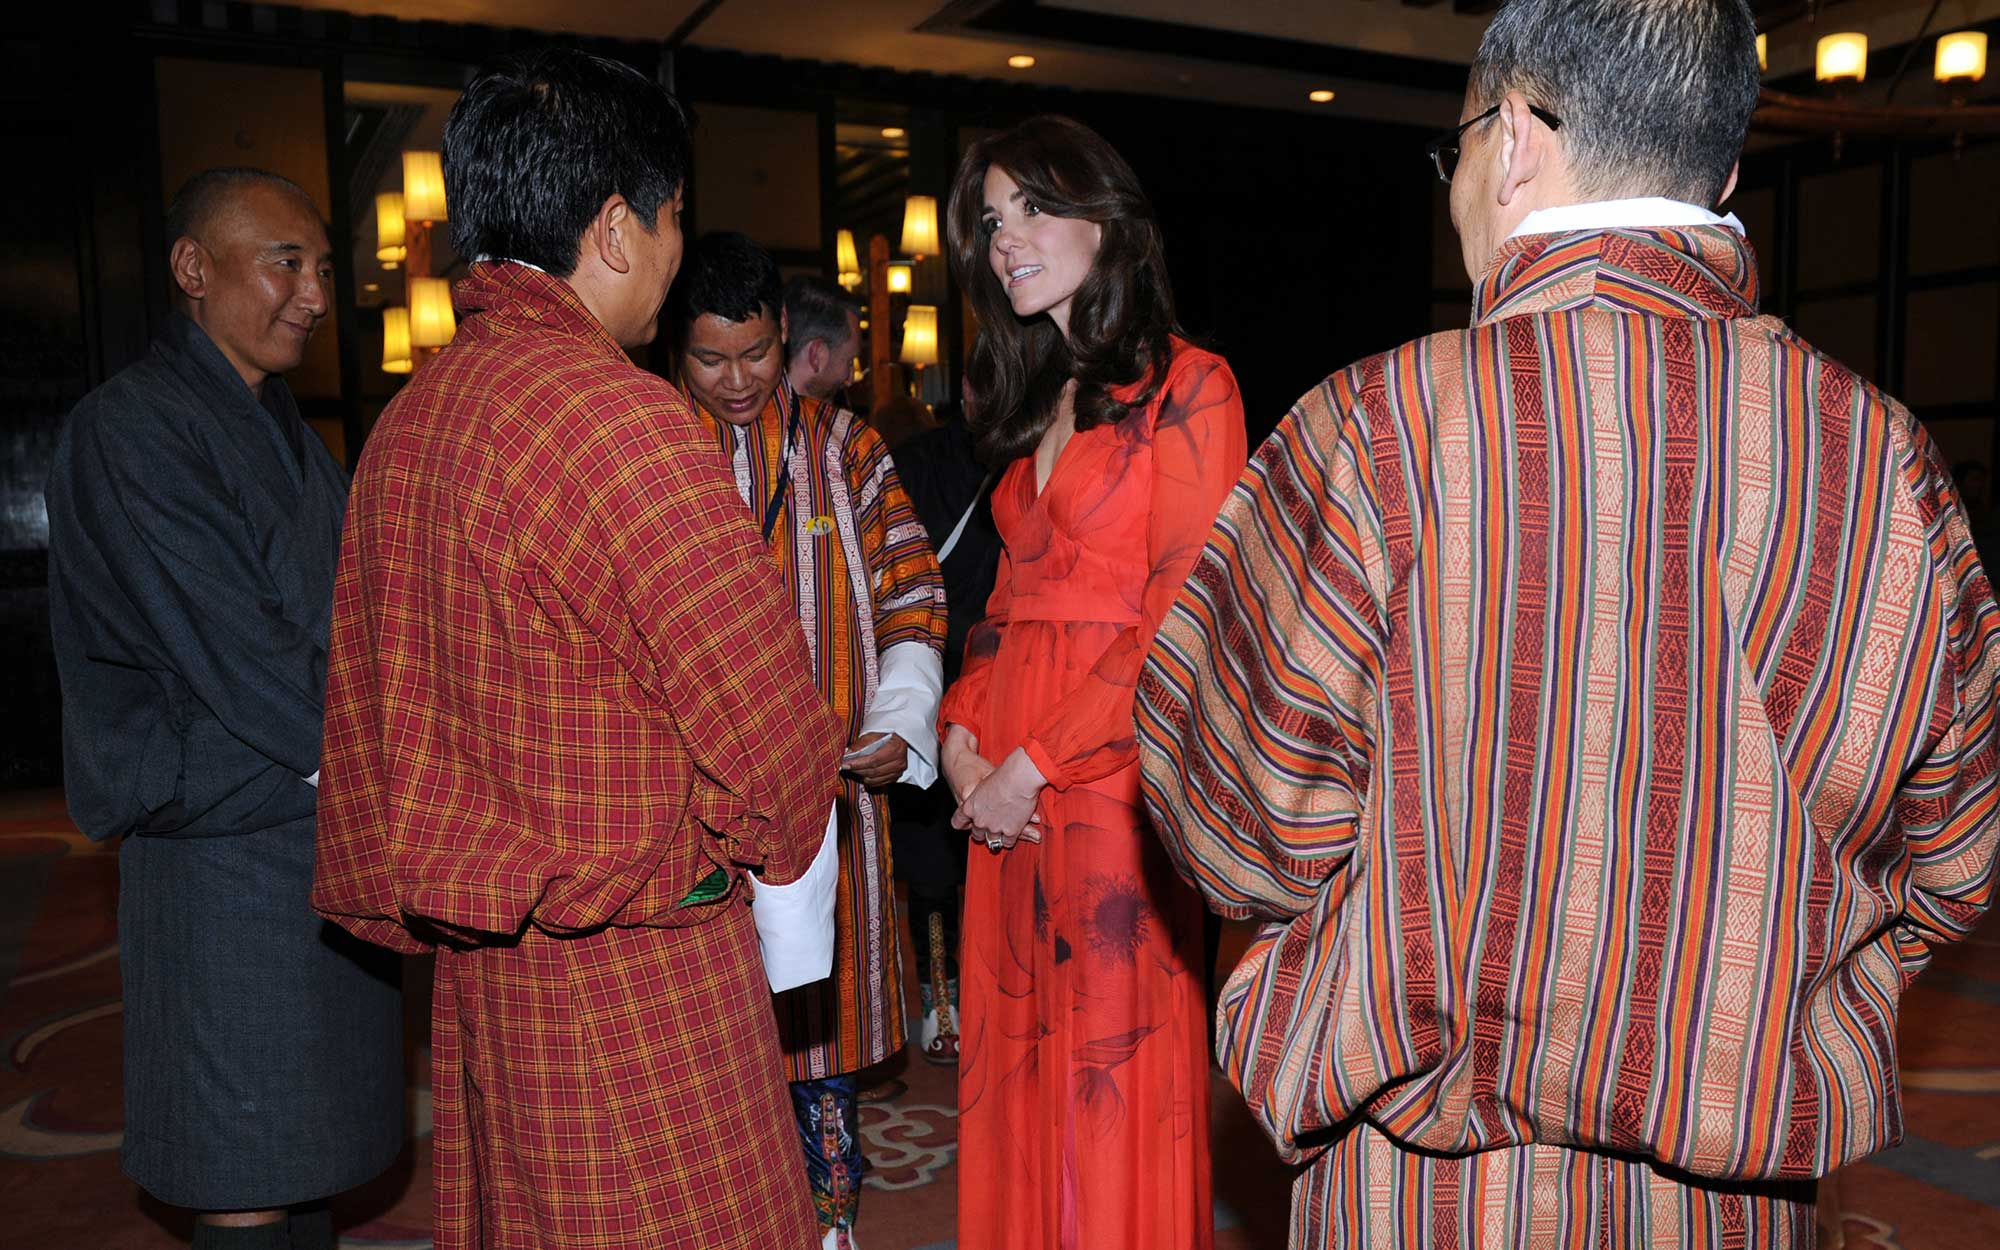 Prince William and Kate Middleton Embark on their Royal Tour of India and Bhutan: Attending a Reception